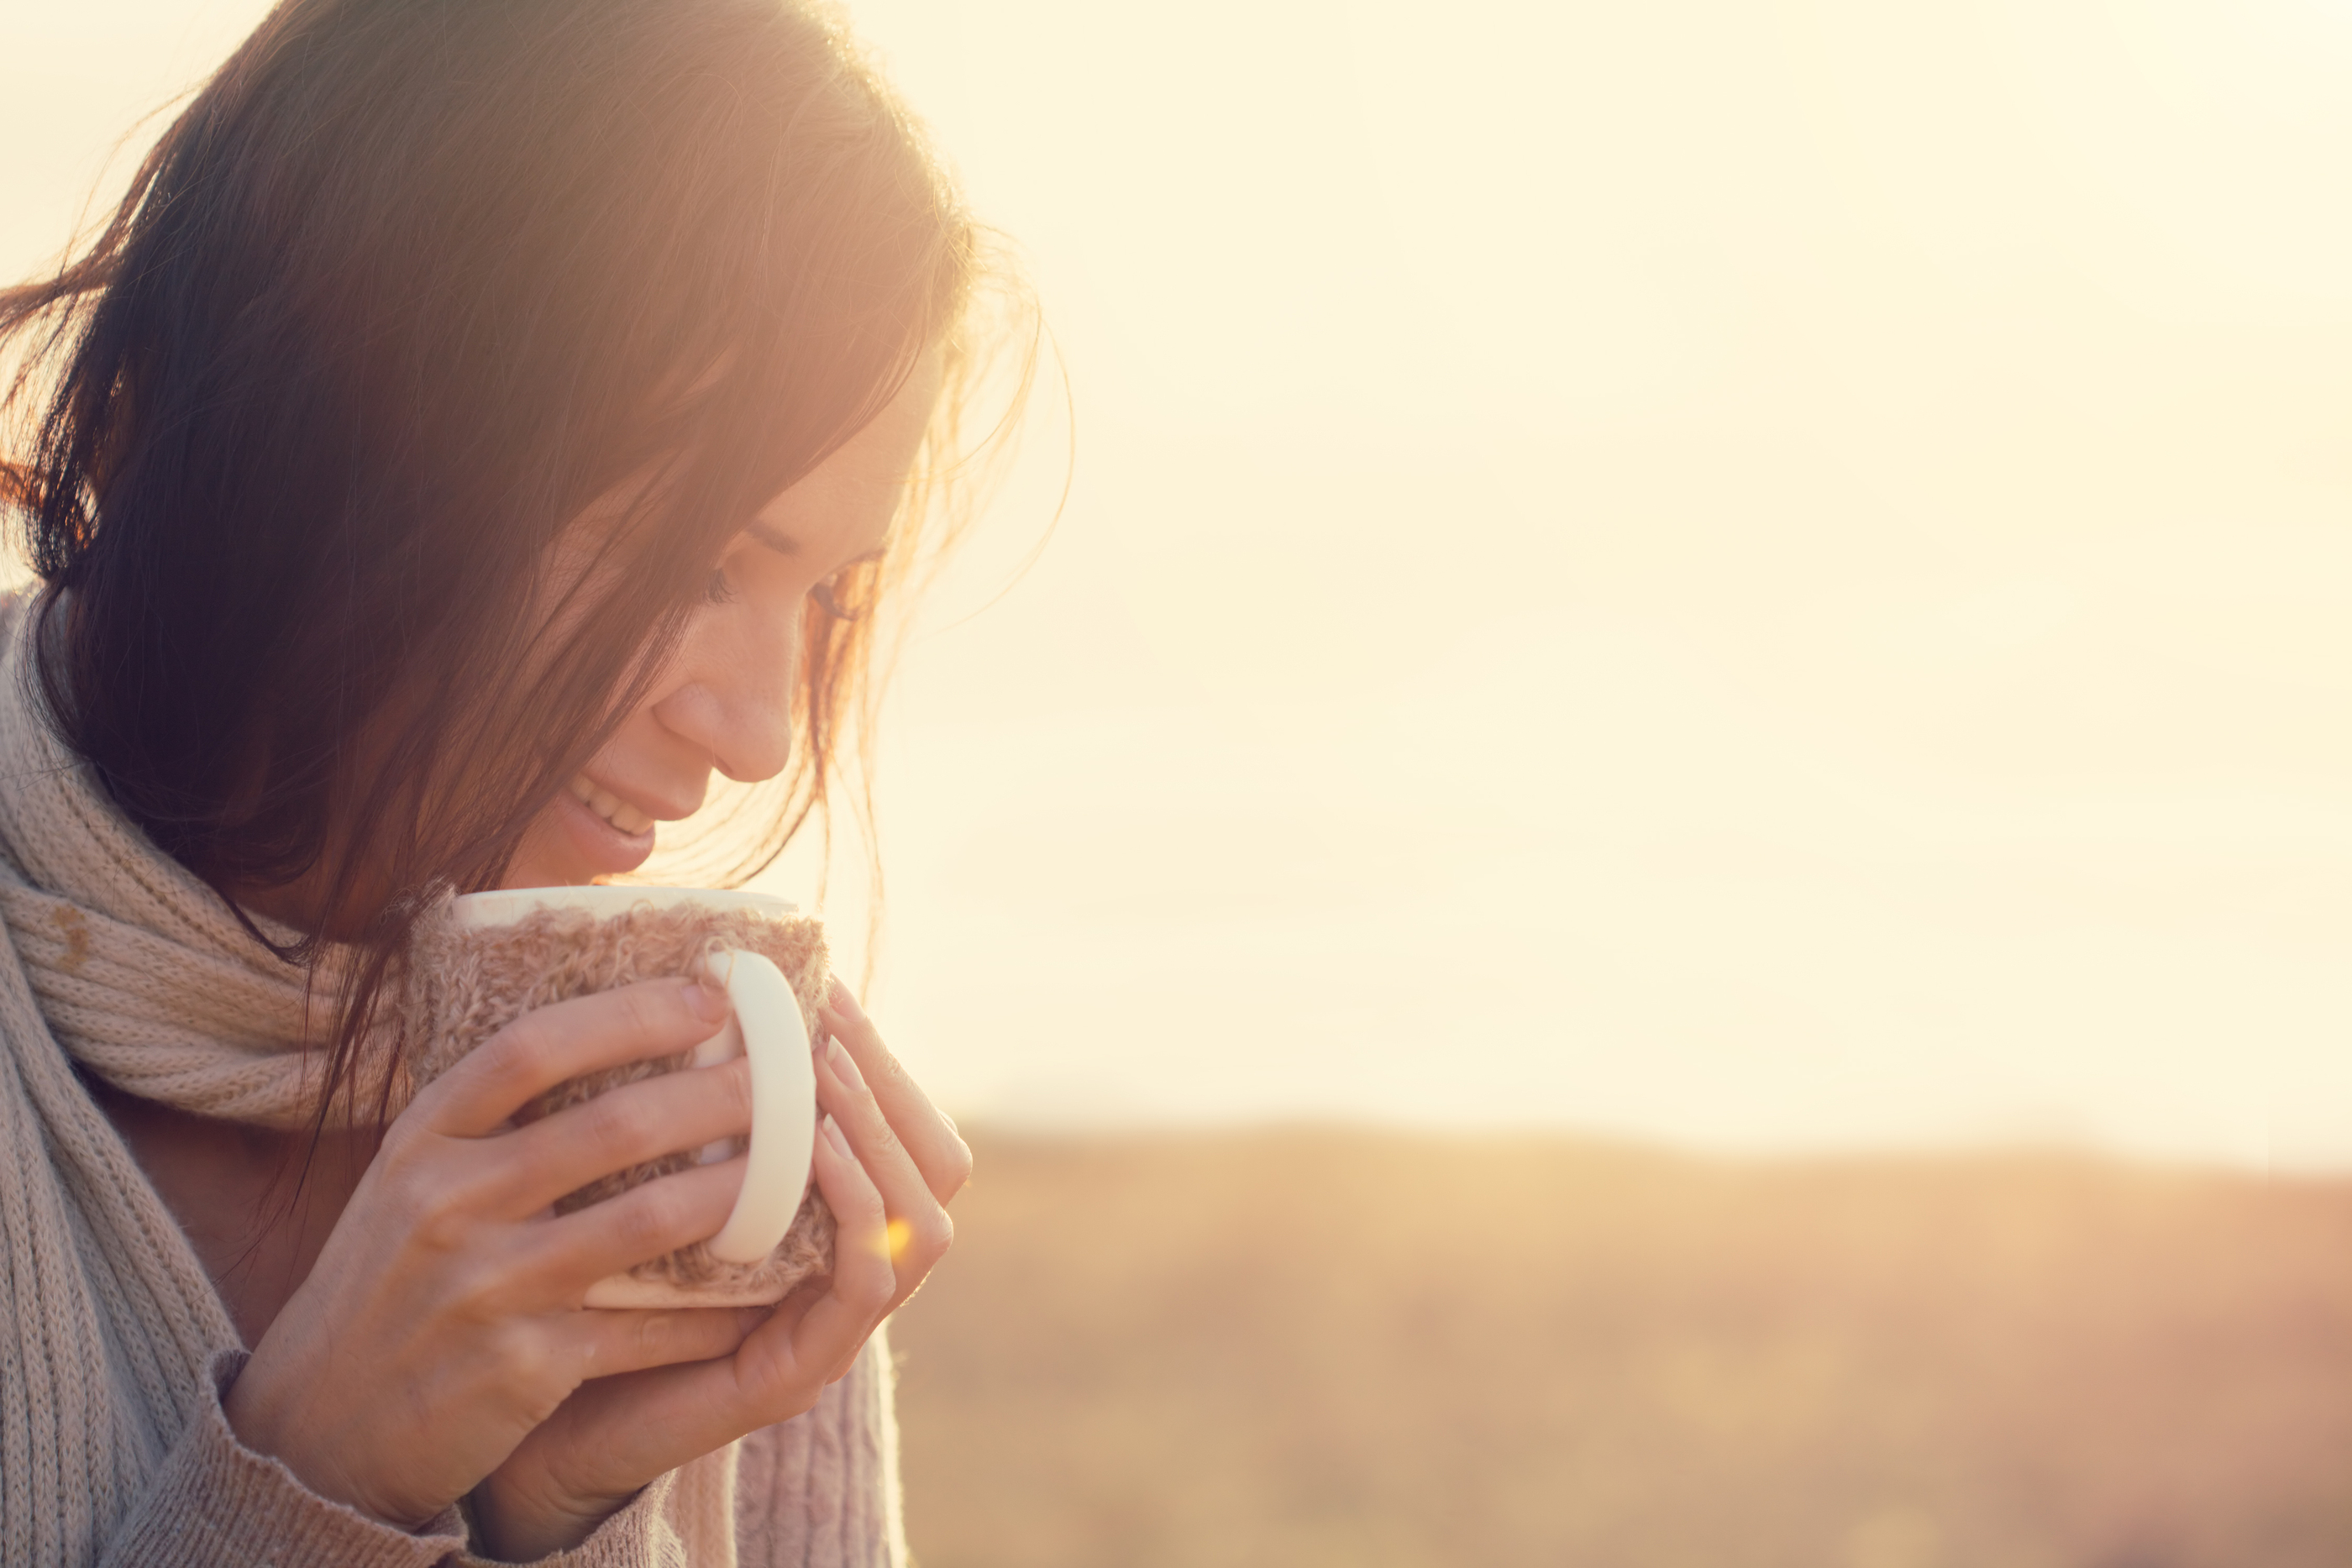 Woman wearing warm knit clothes drinking cup of hot tea or coffee outdoors in su